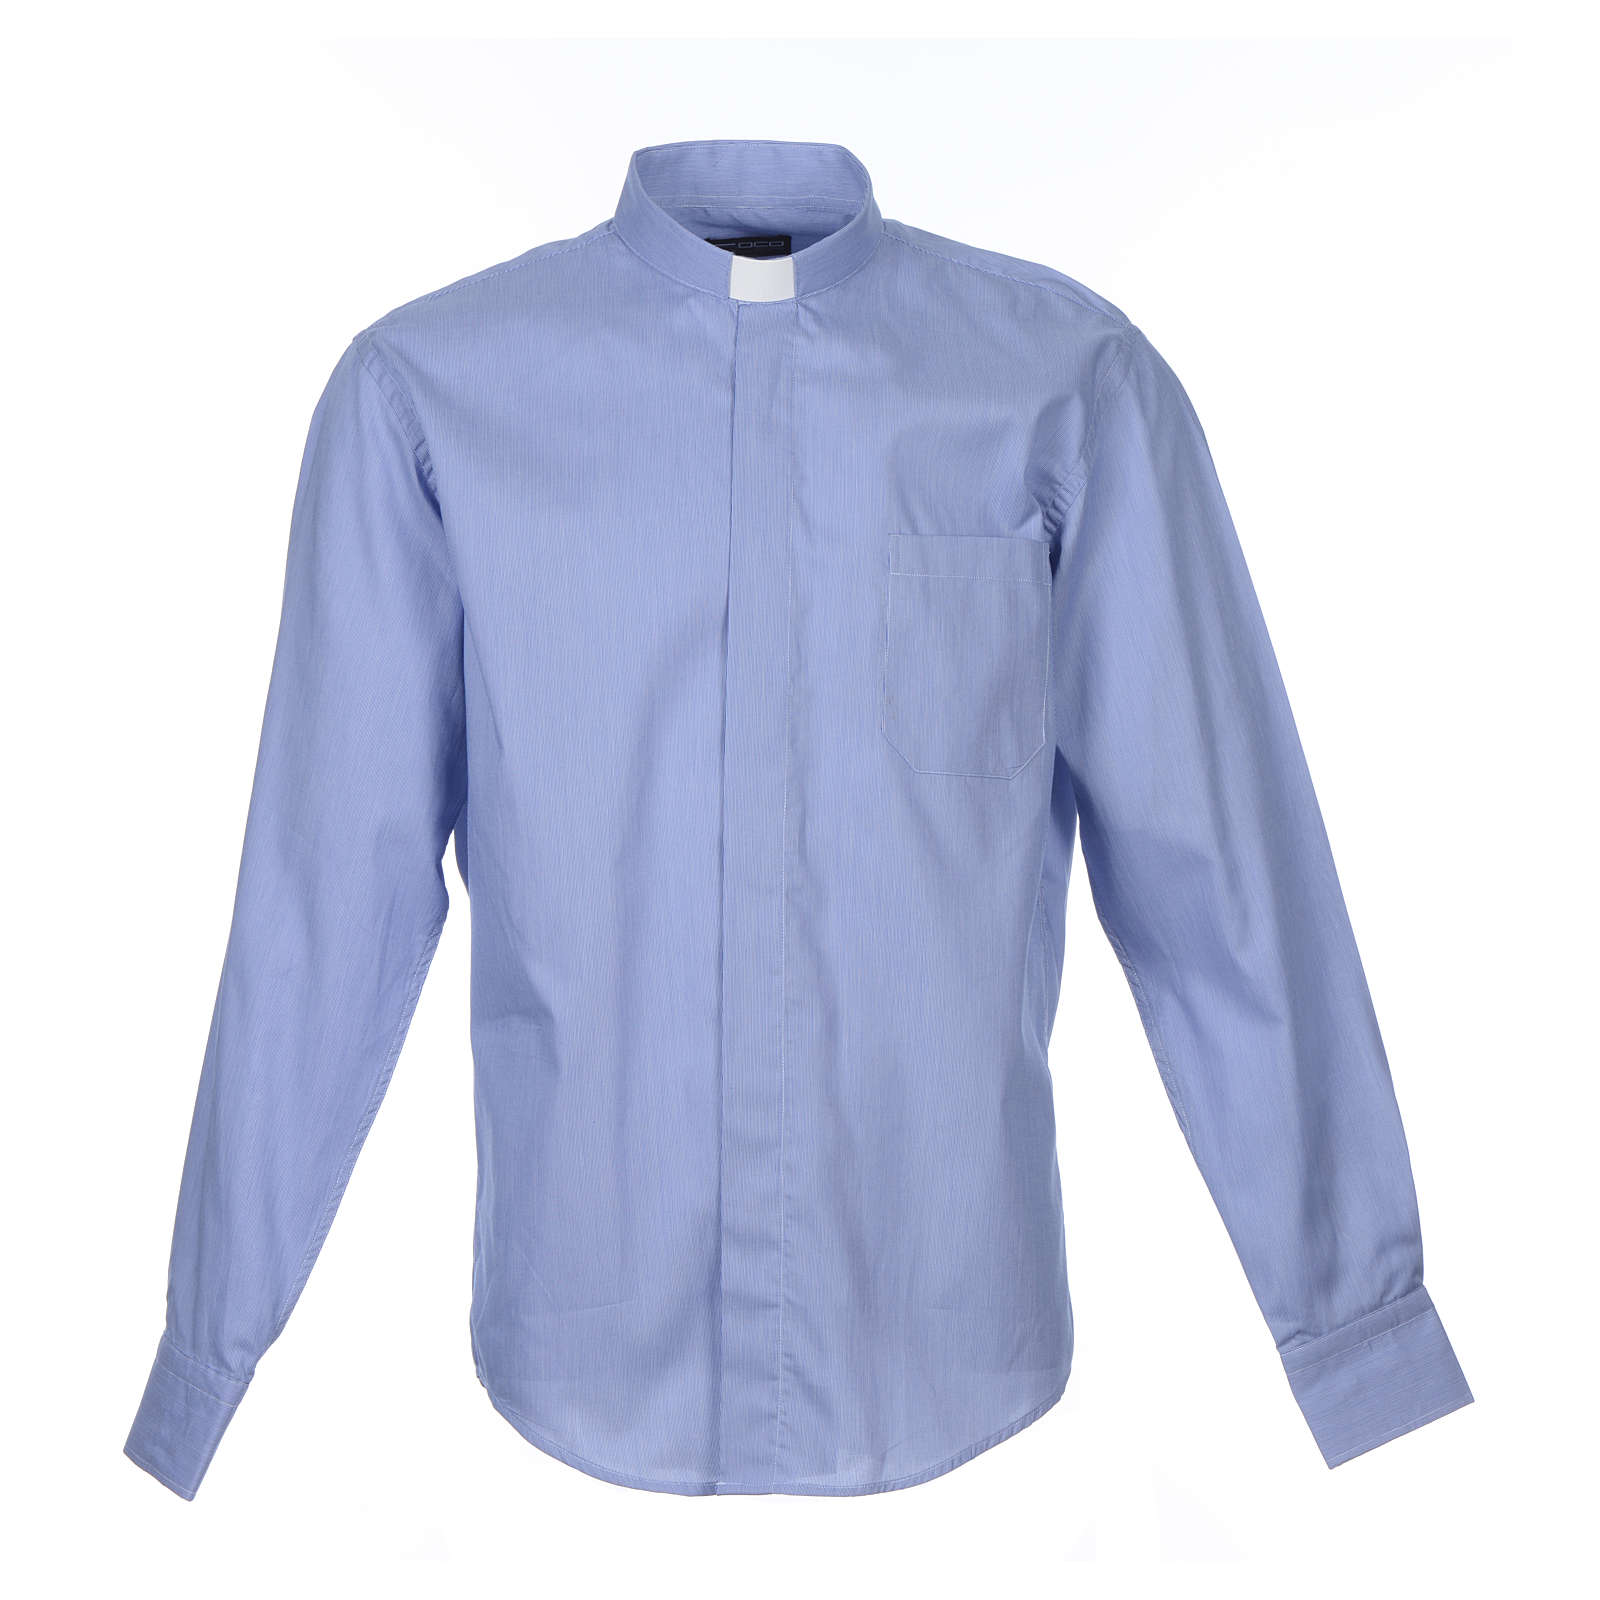 Blue clerical shirt pure cotton, long sleeve, Prestige line 4